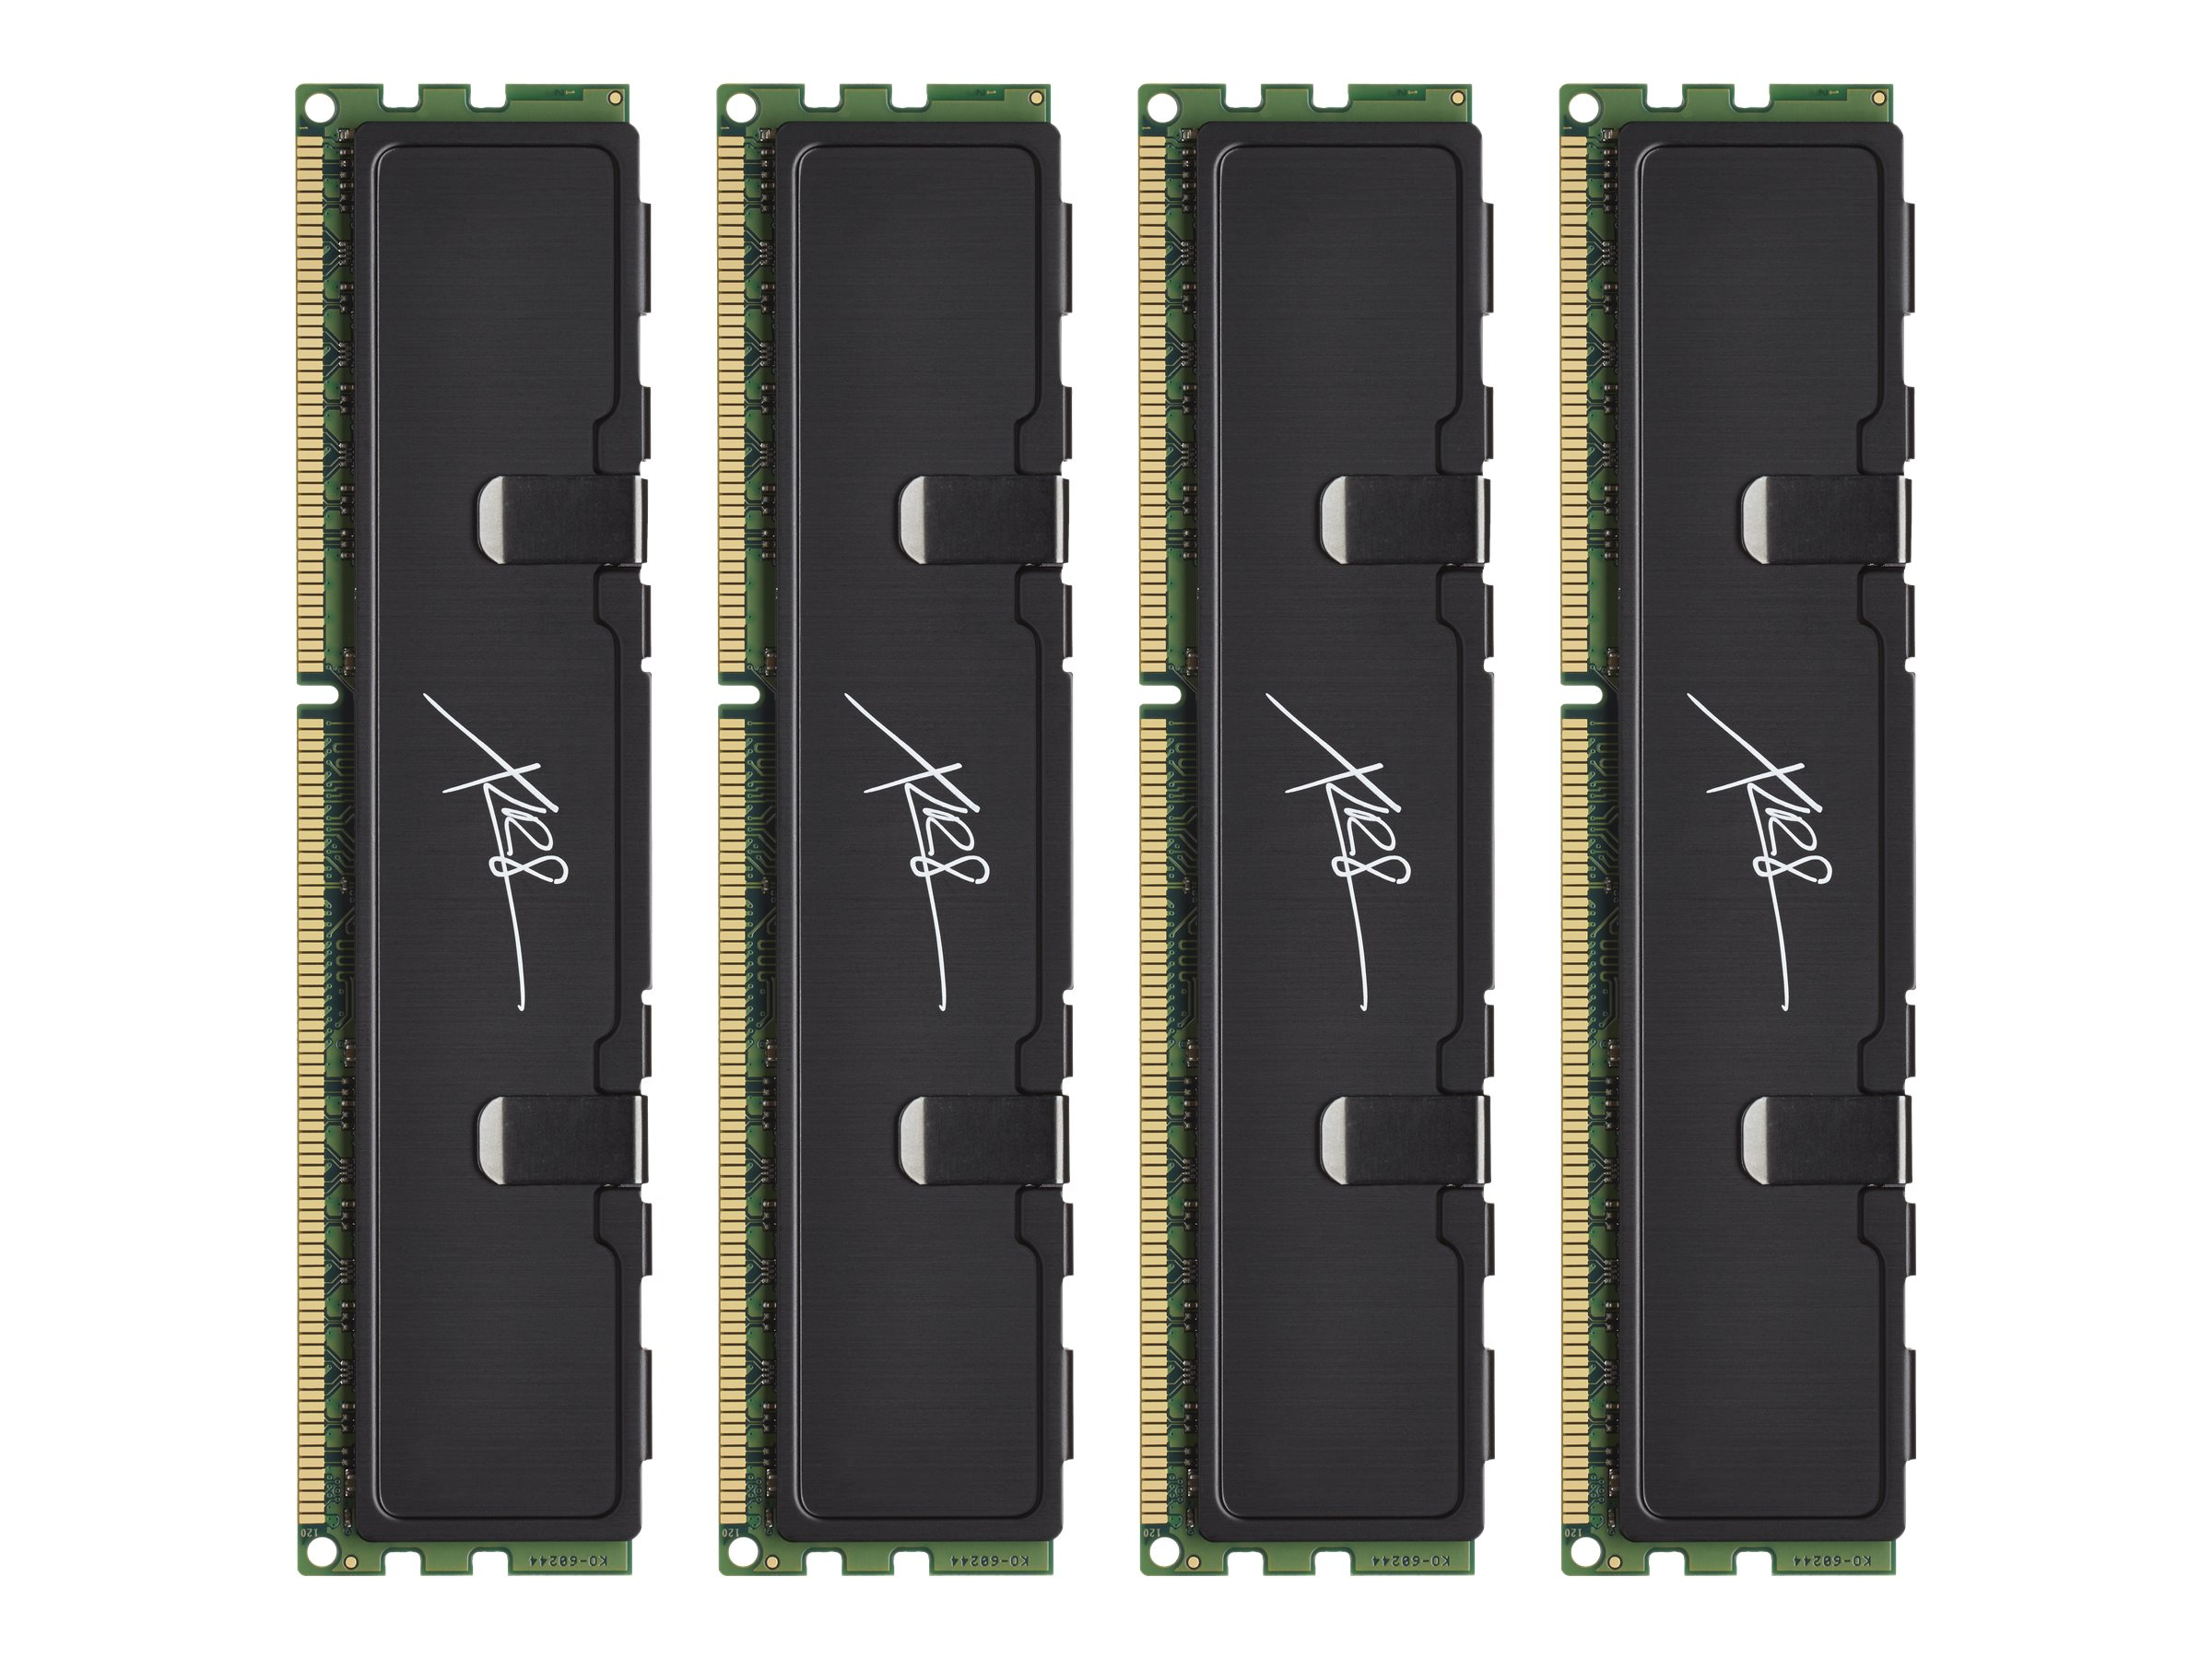 PNY 16GB PC3-12800 240-pin DDR3 SDRAM DIMM Kit, MD16384K4D3-1600-X9